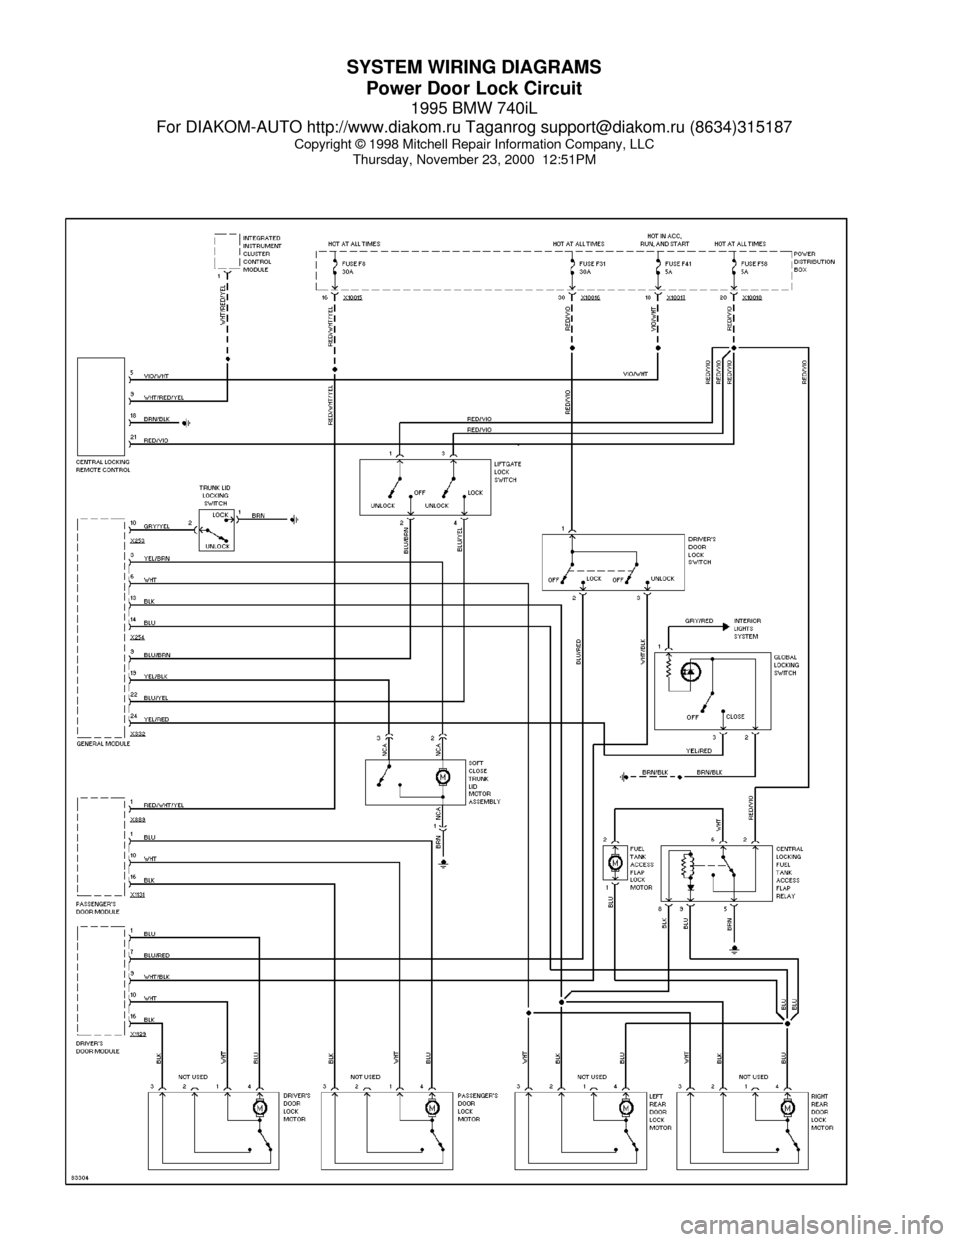 w960_2820-48 Understanding Bmw Wiring Diagrams on understanding engineering drawings, understanding ladder diagrams, understanding foundation diagrams, electronic circuit diagrams, understanding circuits diagrams, understanding electrical diagrams, understanding schematic diagrams, understanding transformer diagrams, pinout diagrams,